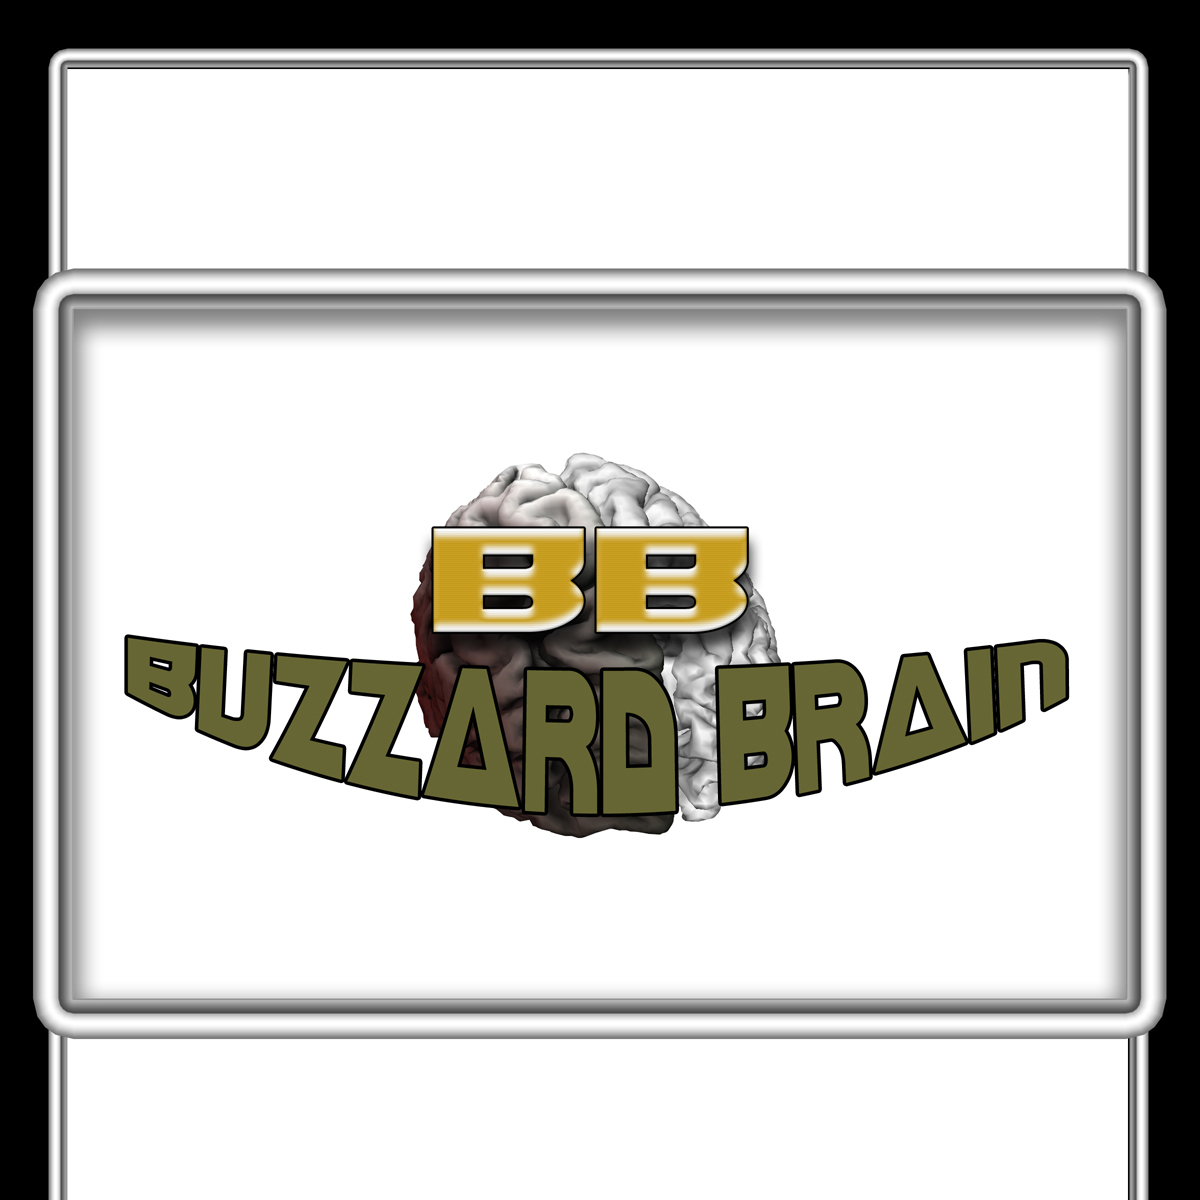 Logo Design by MITUCA ANDREI - Entry No. 20 in the Logo Design Contest Buzzard Brain Logo Design.